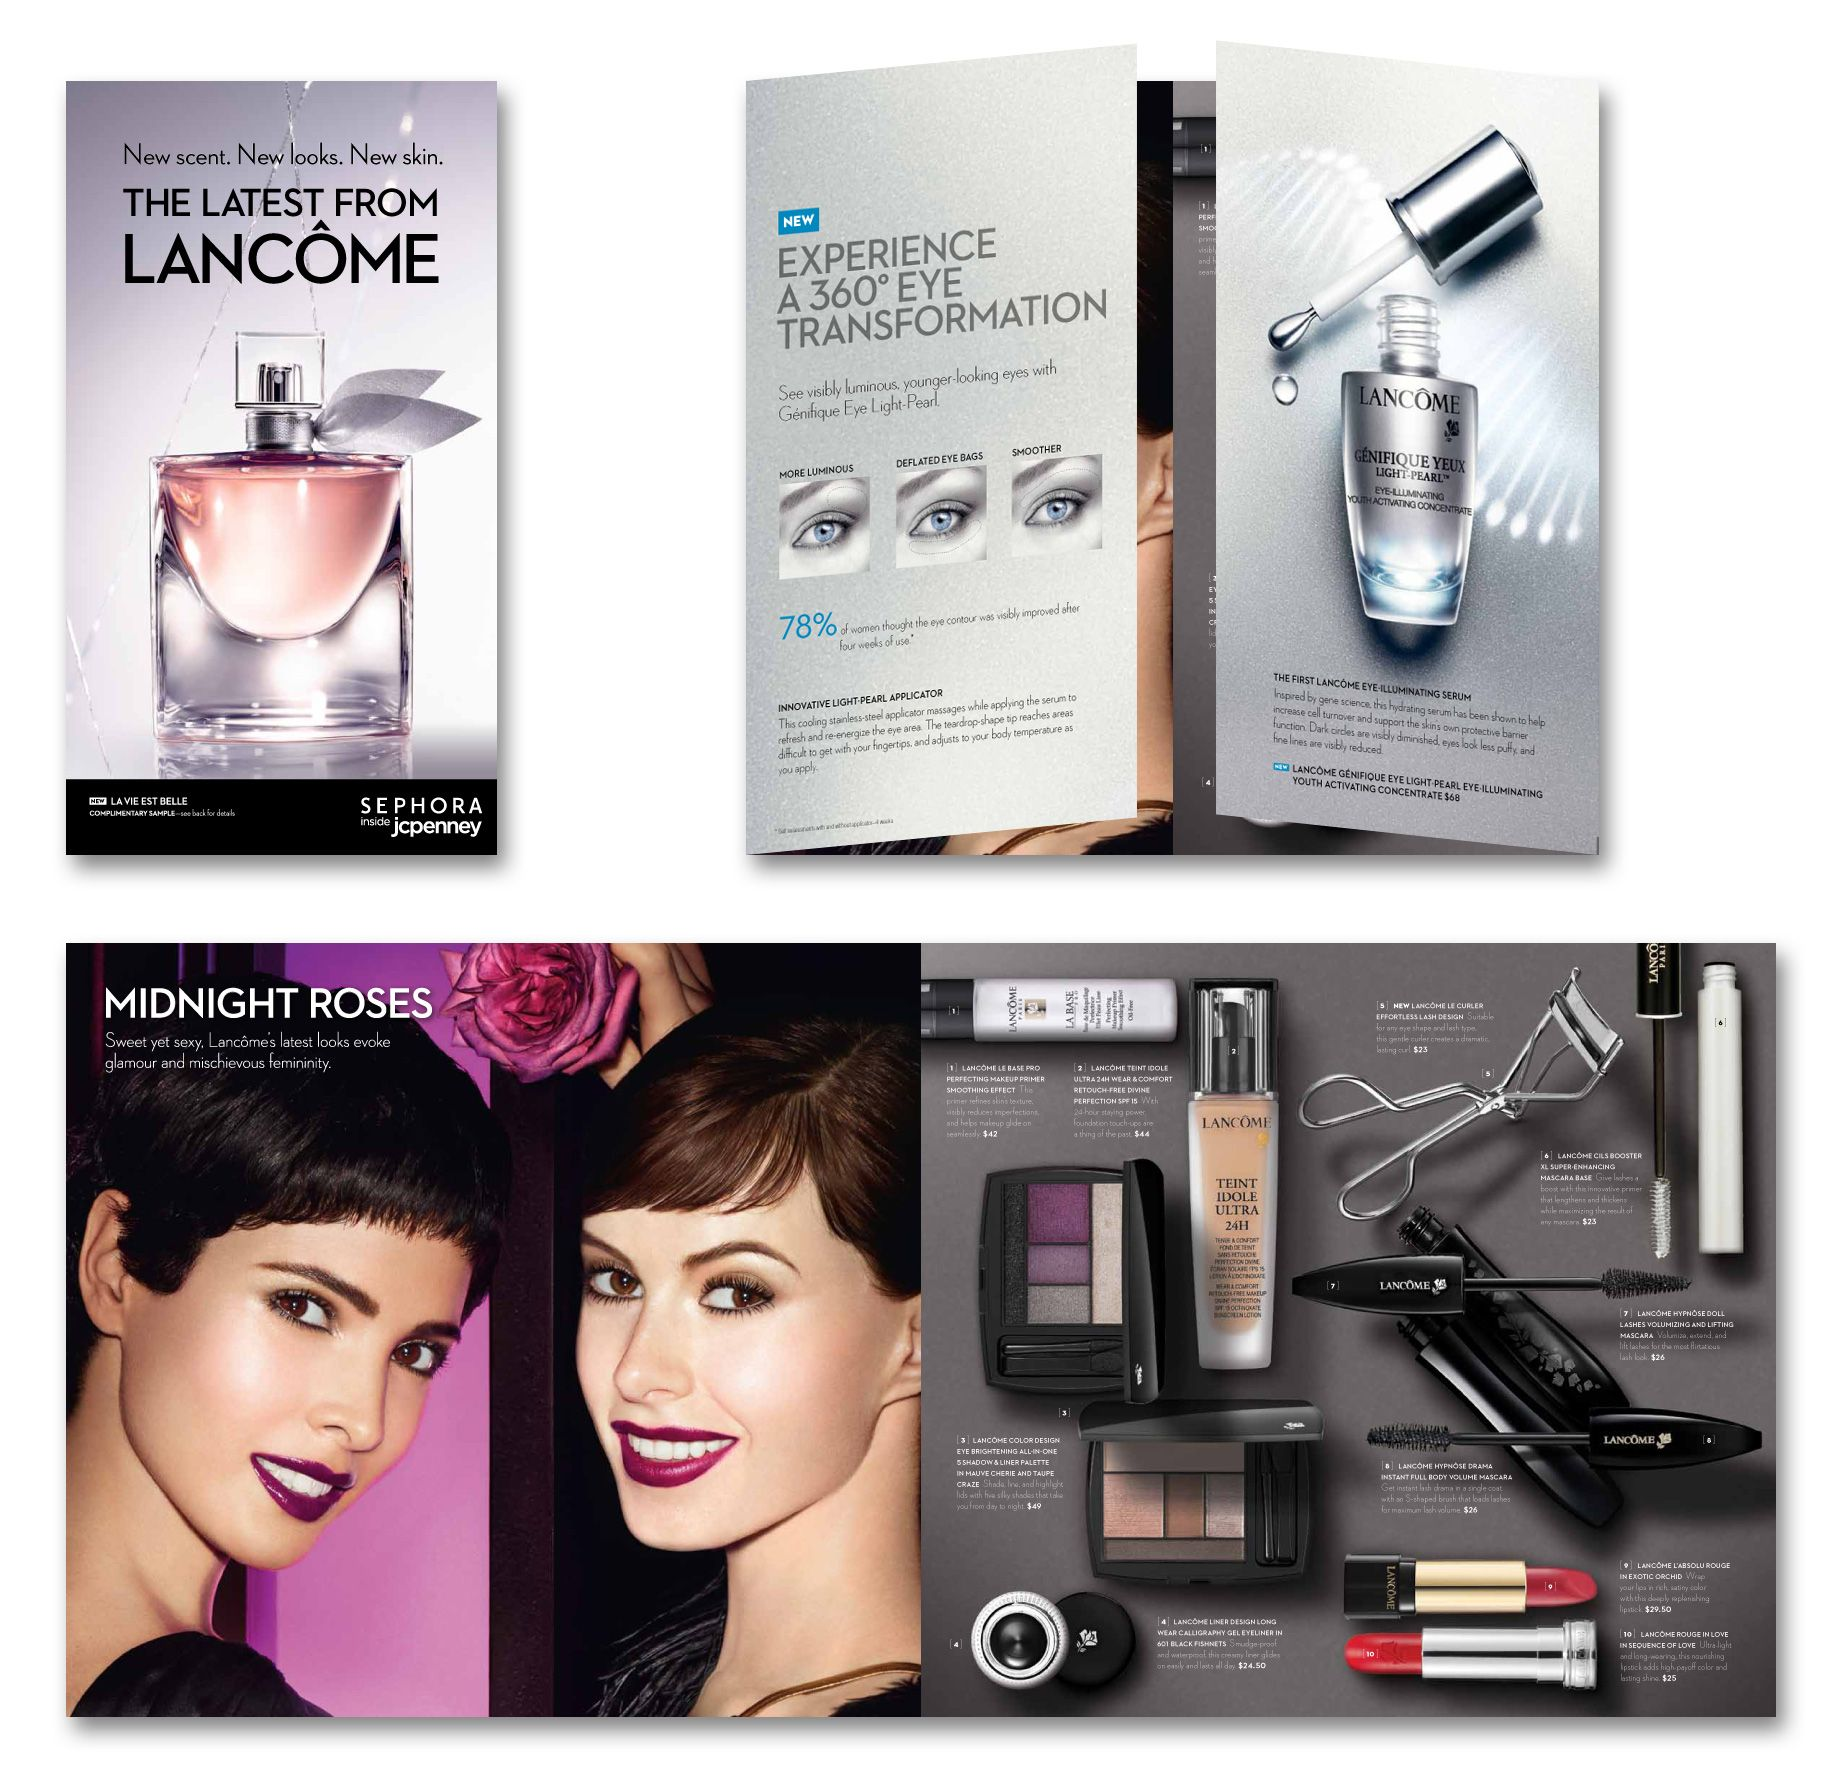 Sephora inside JCPenney direct mail (Fall 2012). Creative Director: Jacki Puzik #beauty #lancome #lavieestbelle